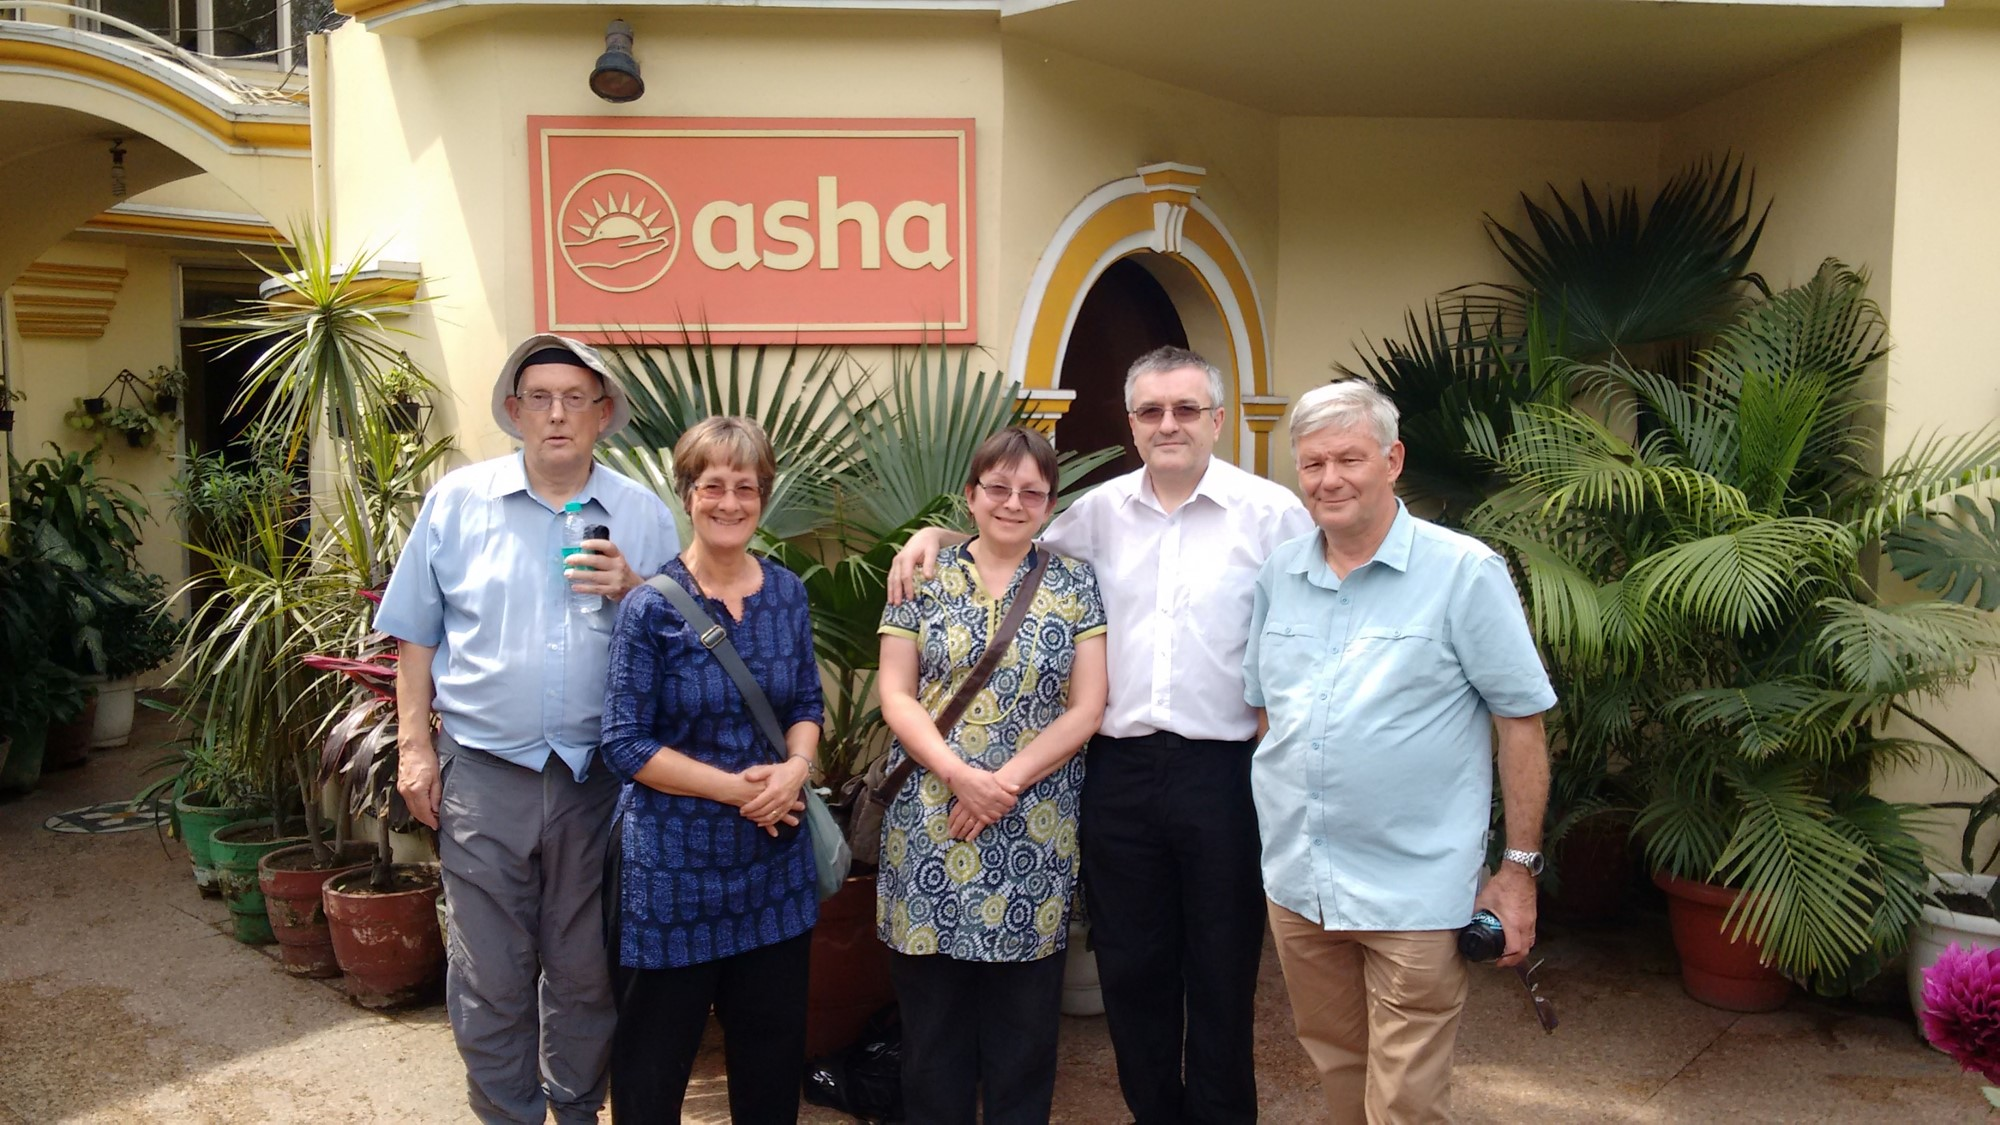 L-R : Steve Baker, Sue Rees, Julie Hogben, Dr Dick, and Nigel Rees, at the Asha Headquarters.